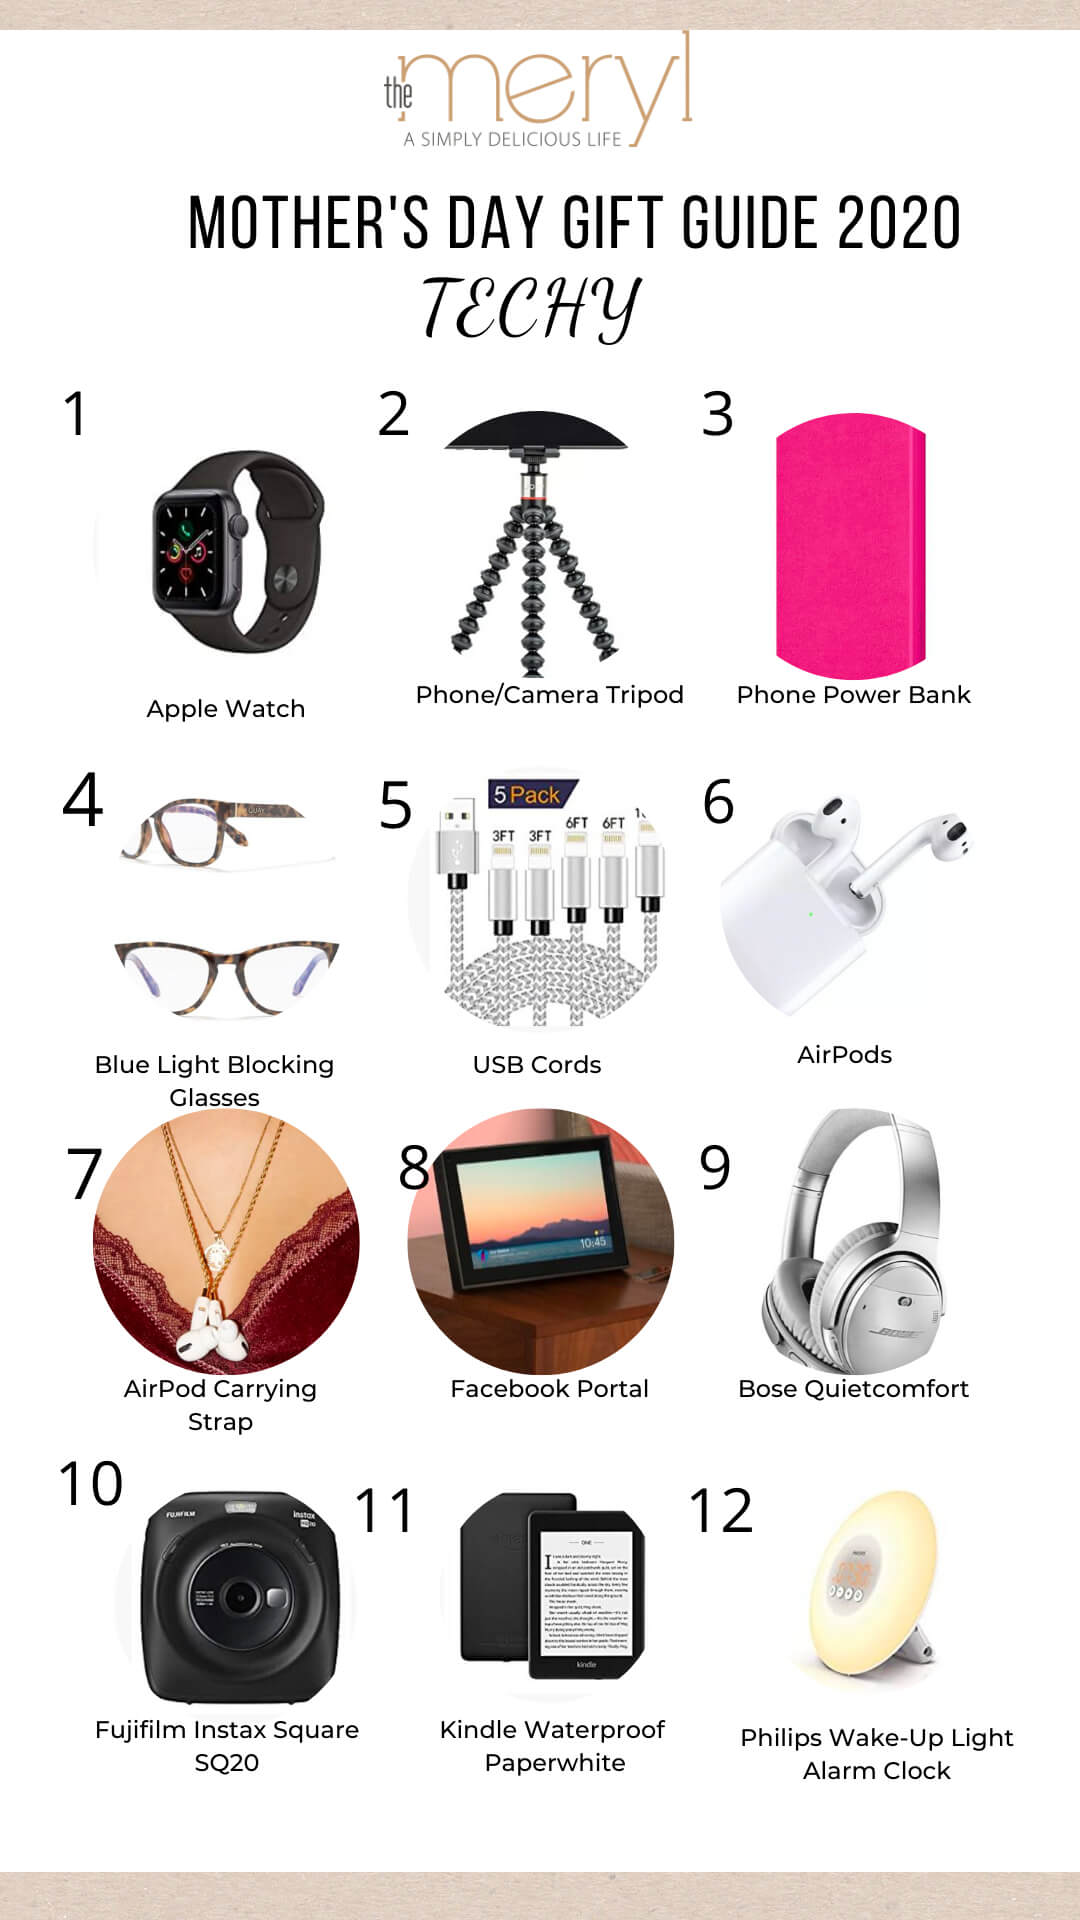 Mother's Day 2020 Gift Guide - Techy